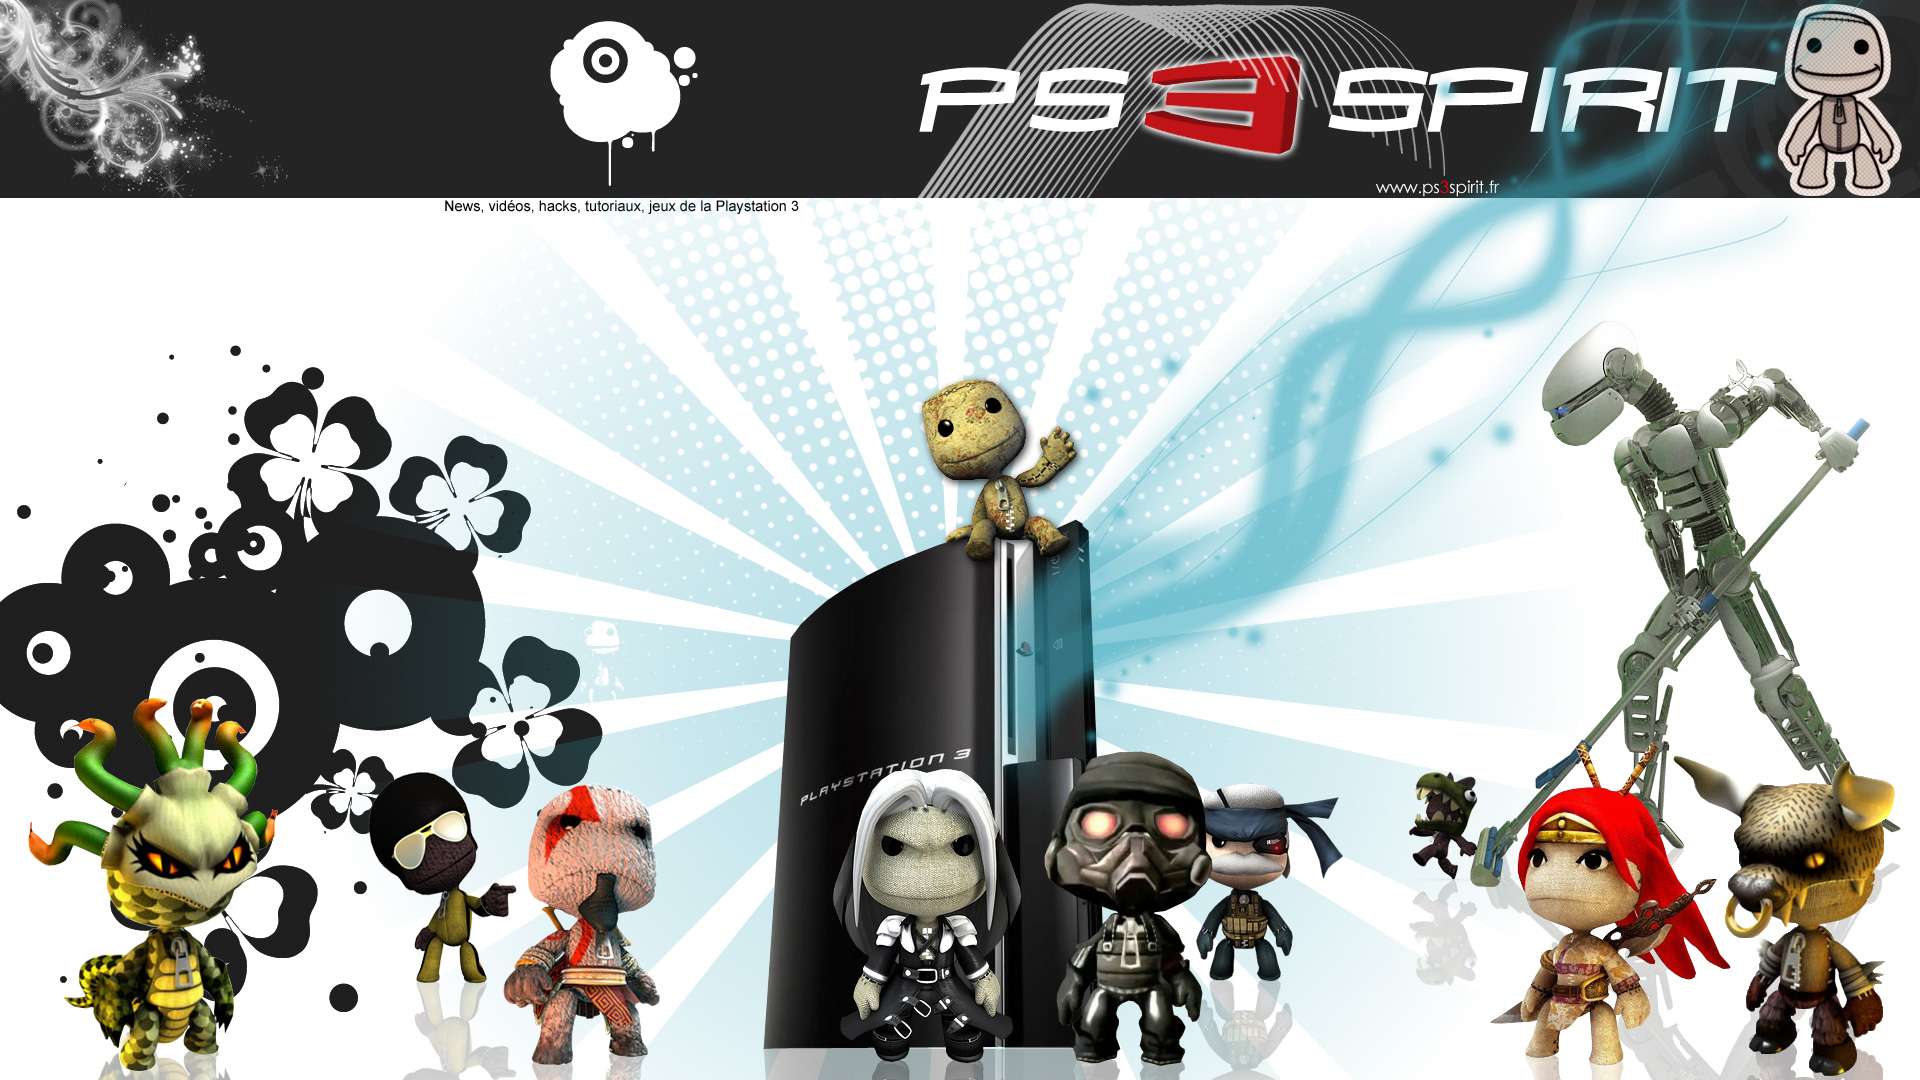 LBP On Top of the PS3 Wallpapers